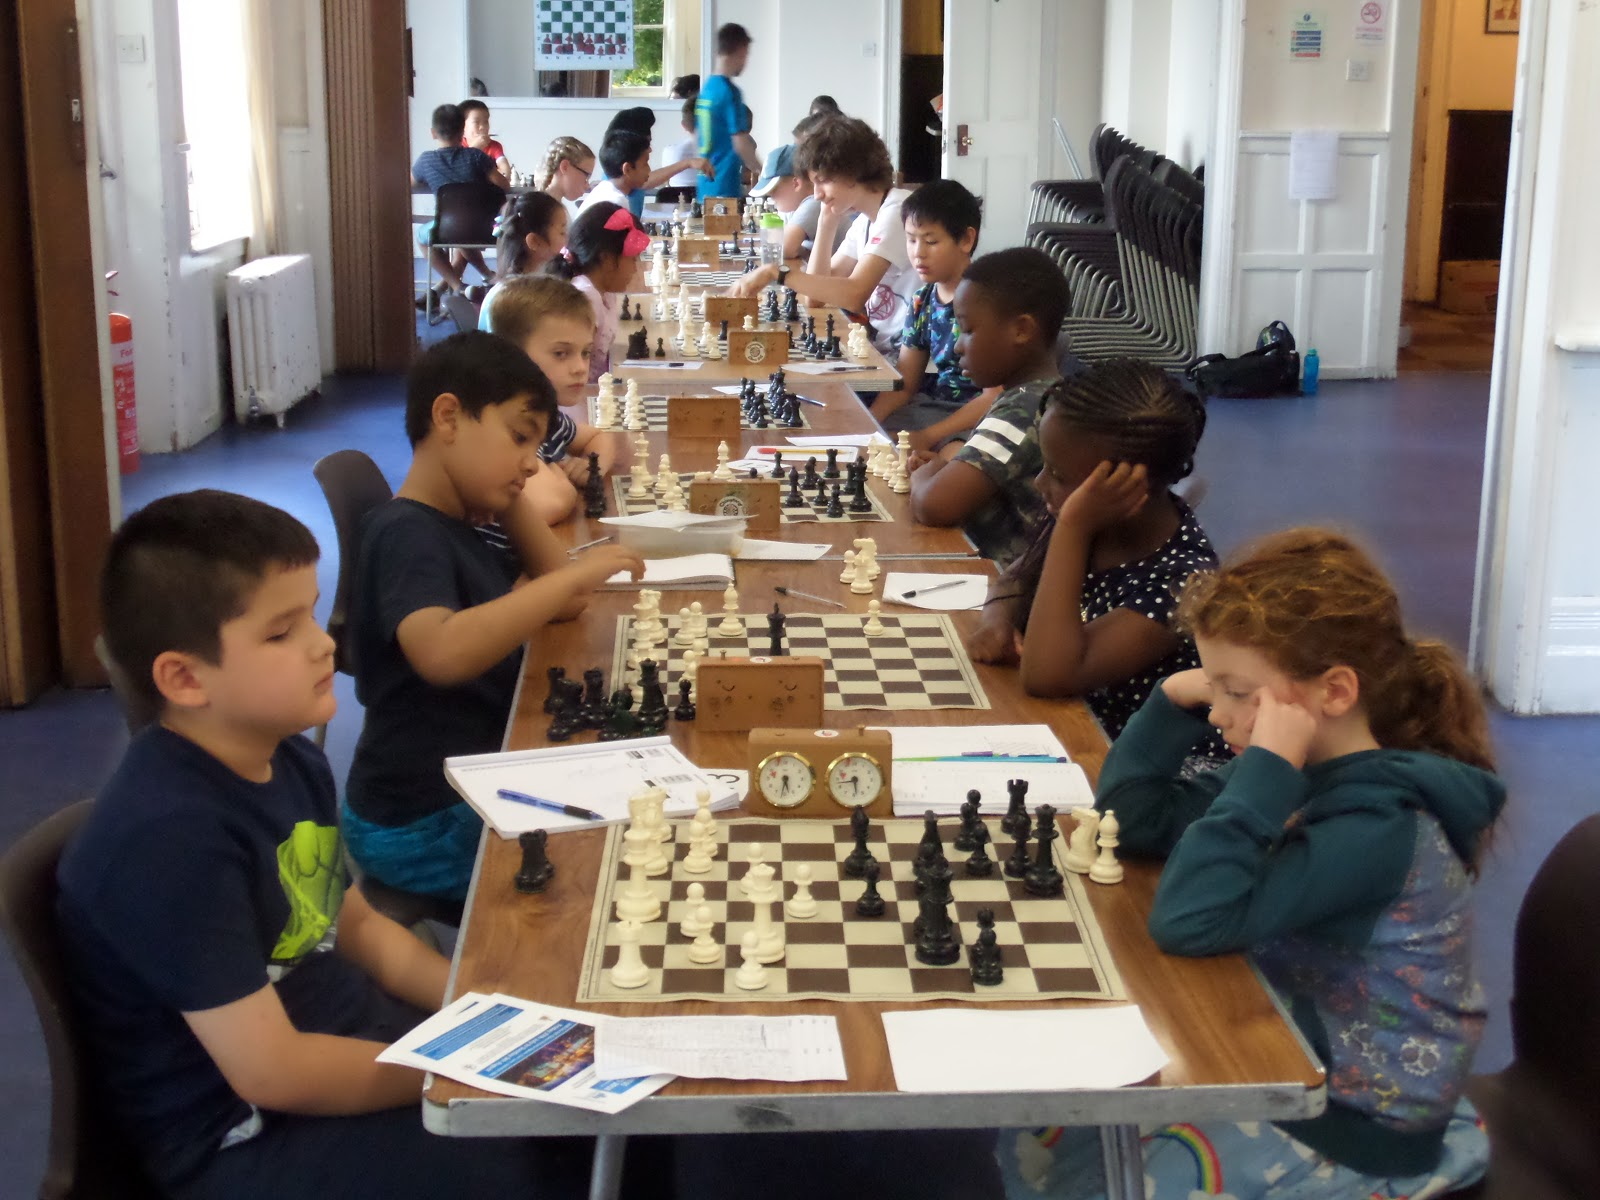 British chess championship 2018 prizes for teens